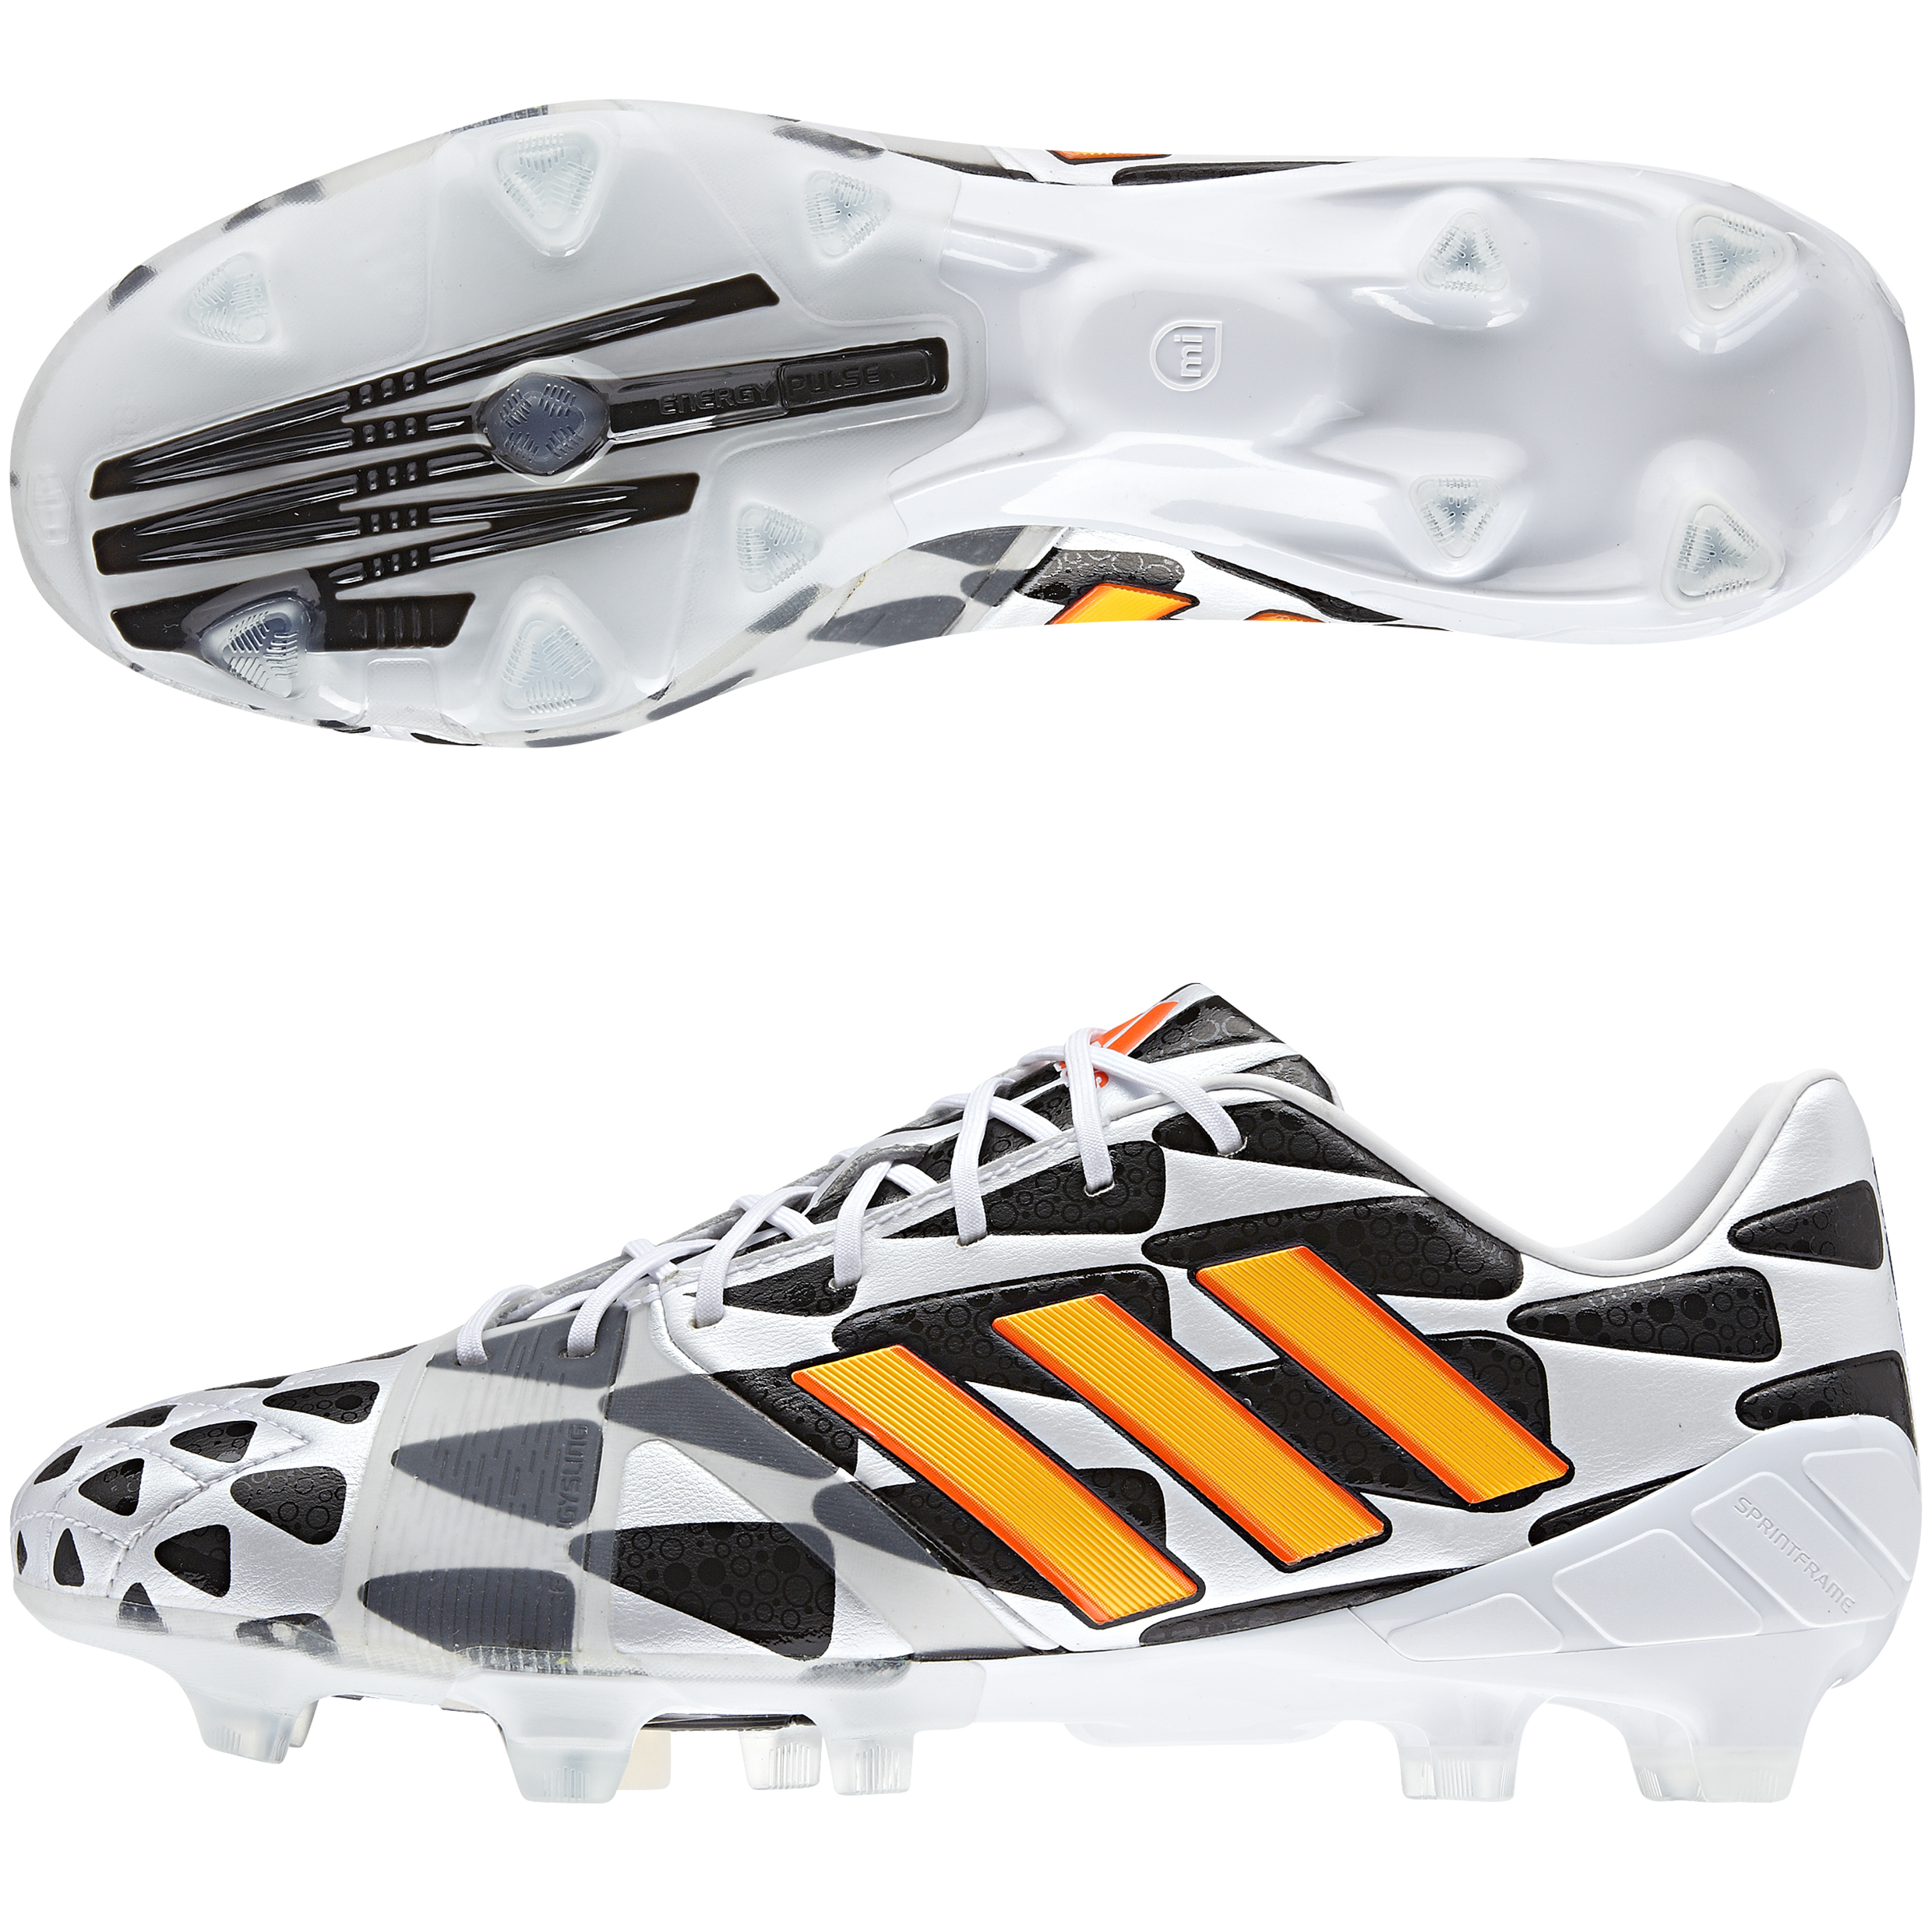 Nitrocharge 1.0 World Cup 2014 FG White